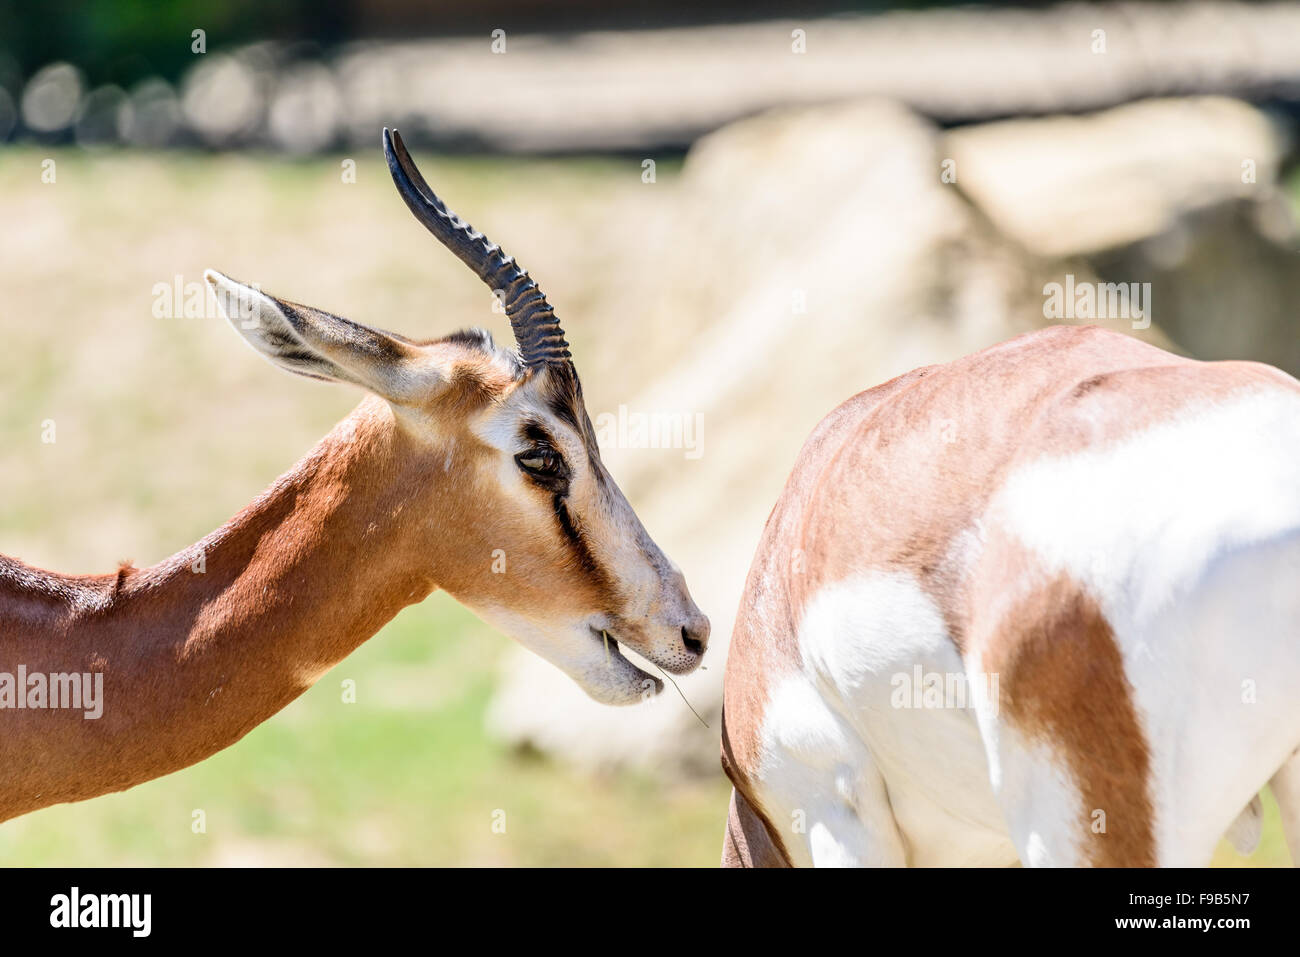 Wild Gazelles On Savannah In National Park - Stock Image